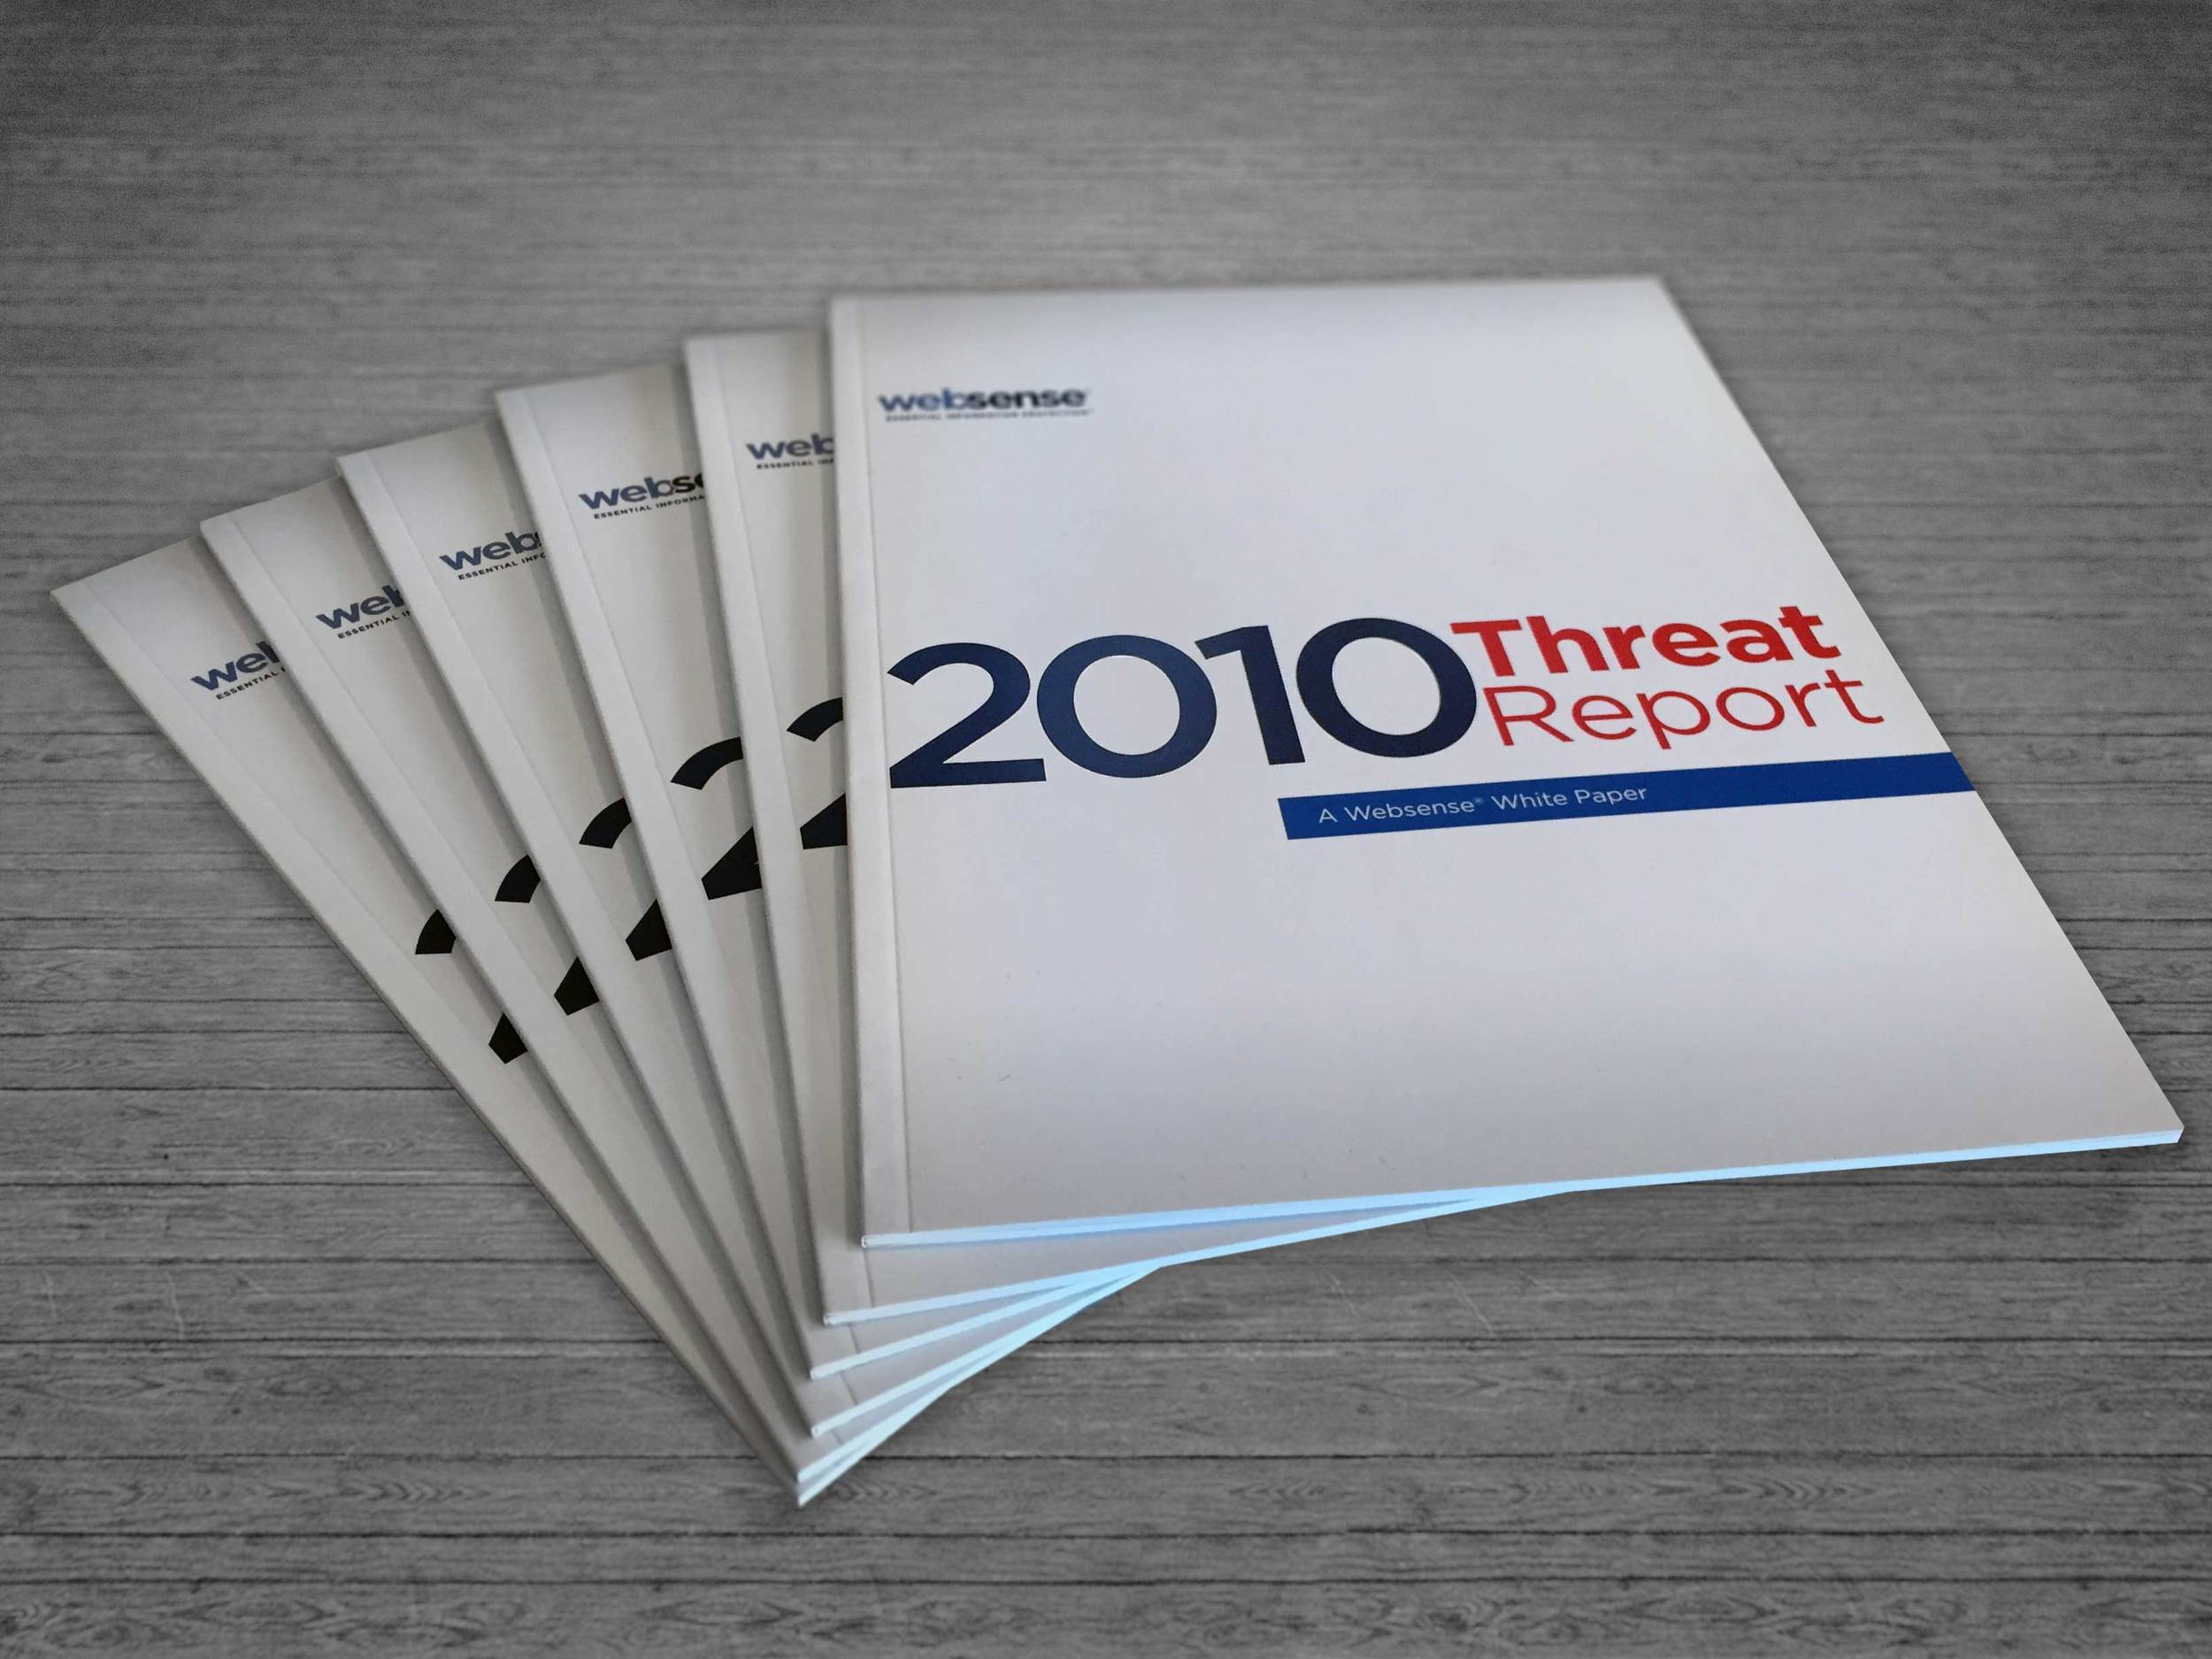 2010-Threat-Report-Covers.jpg